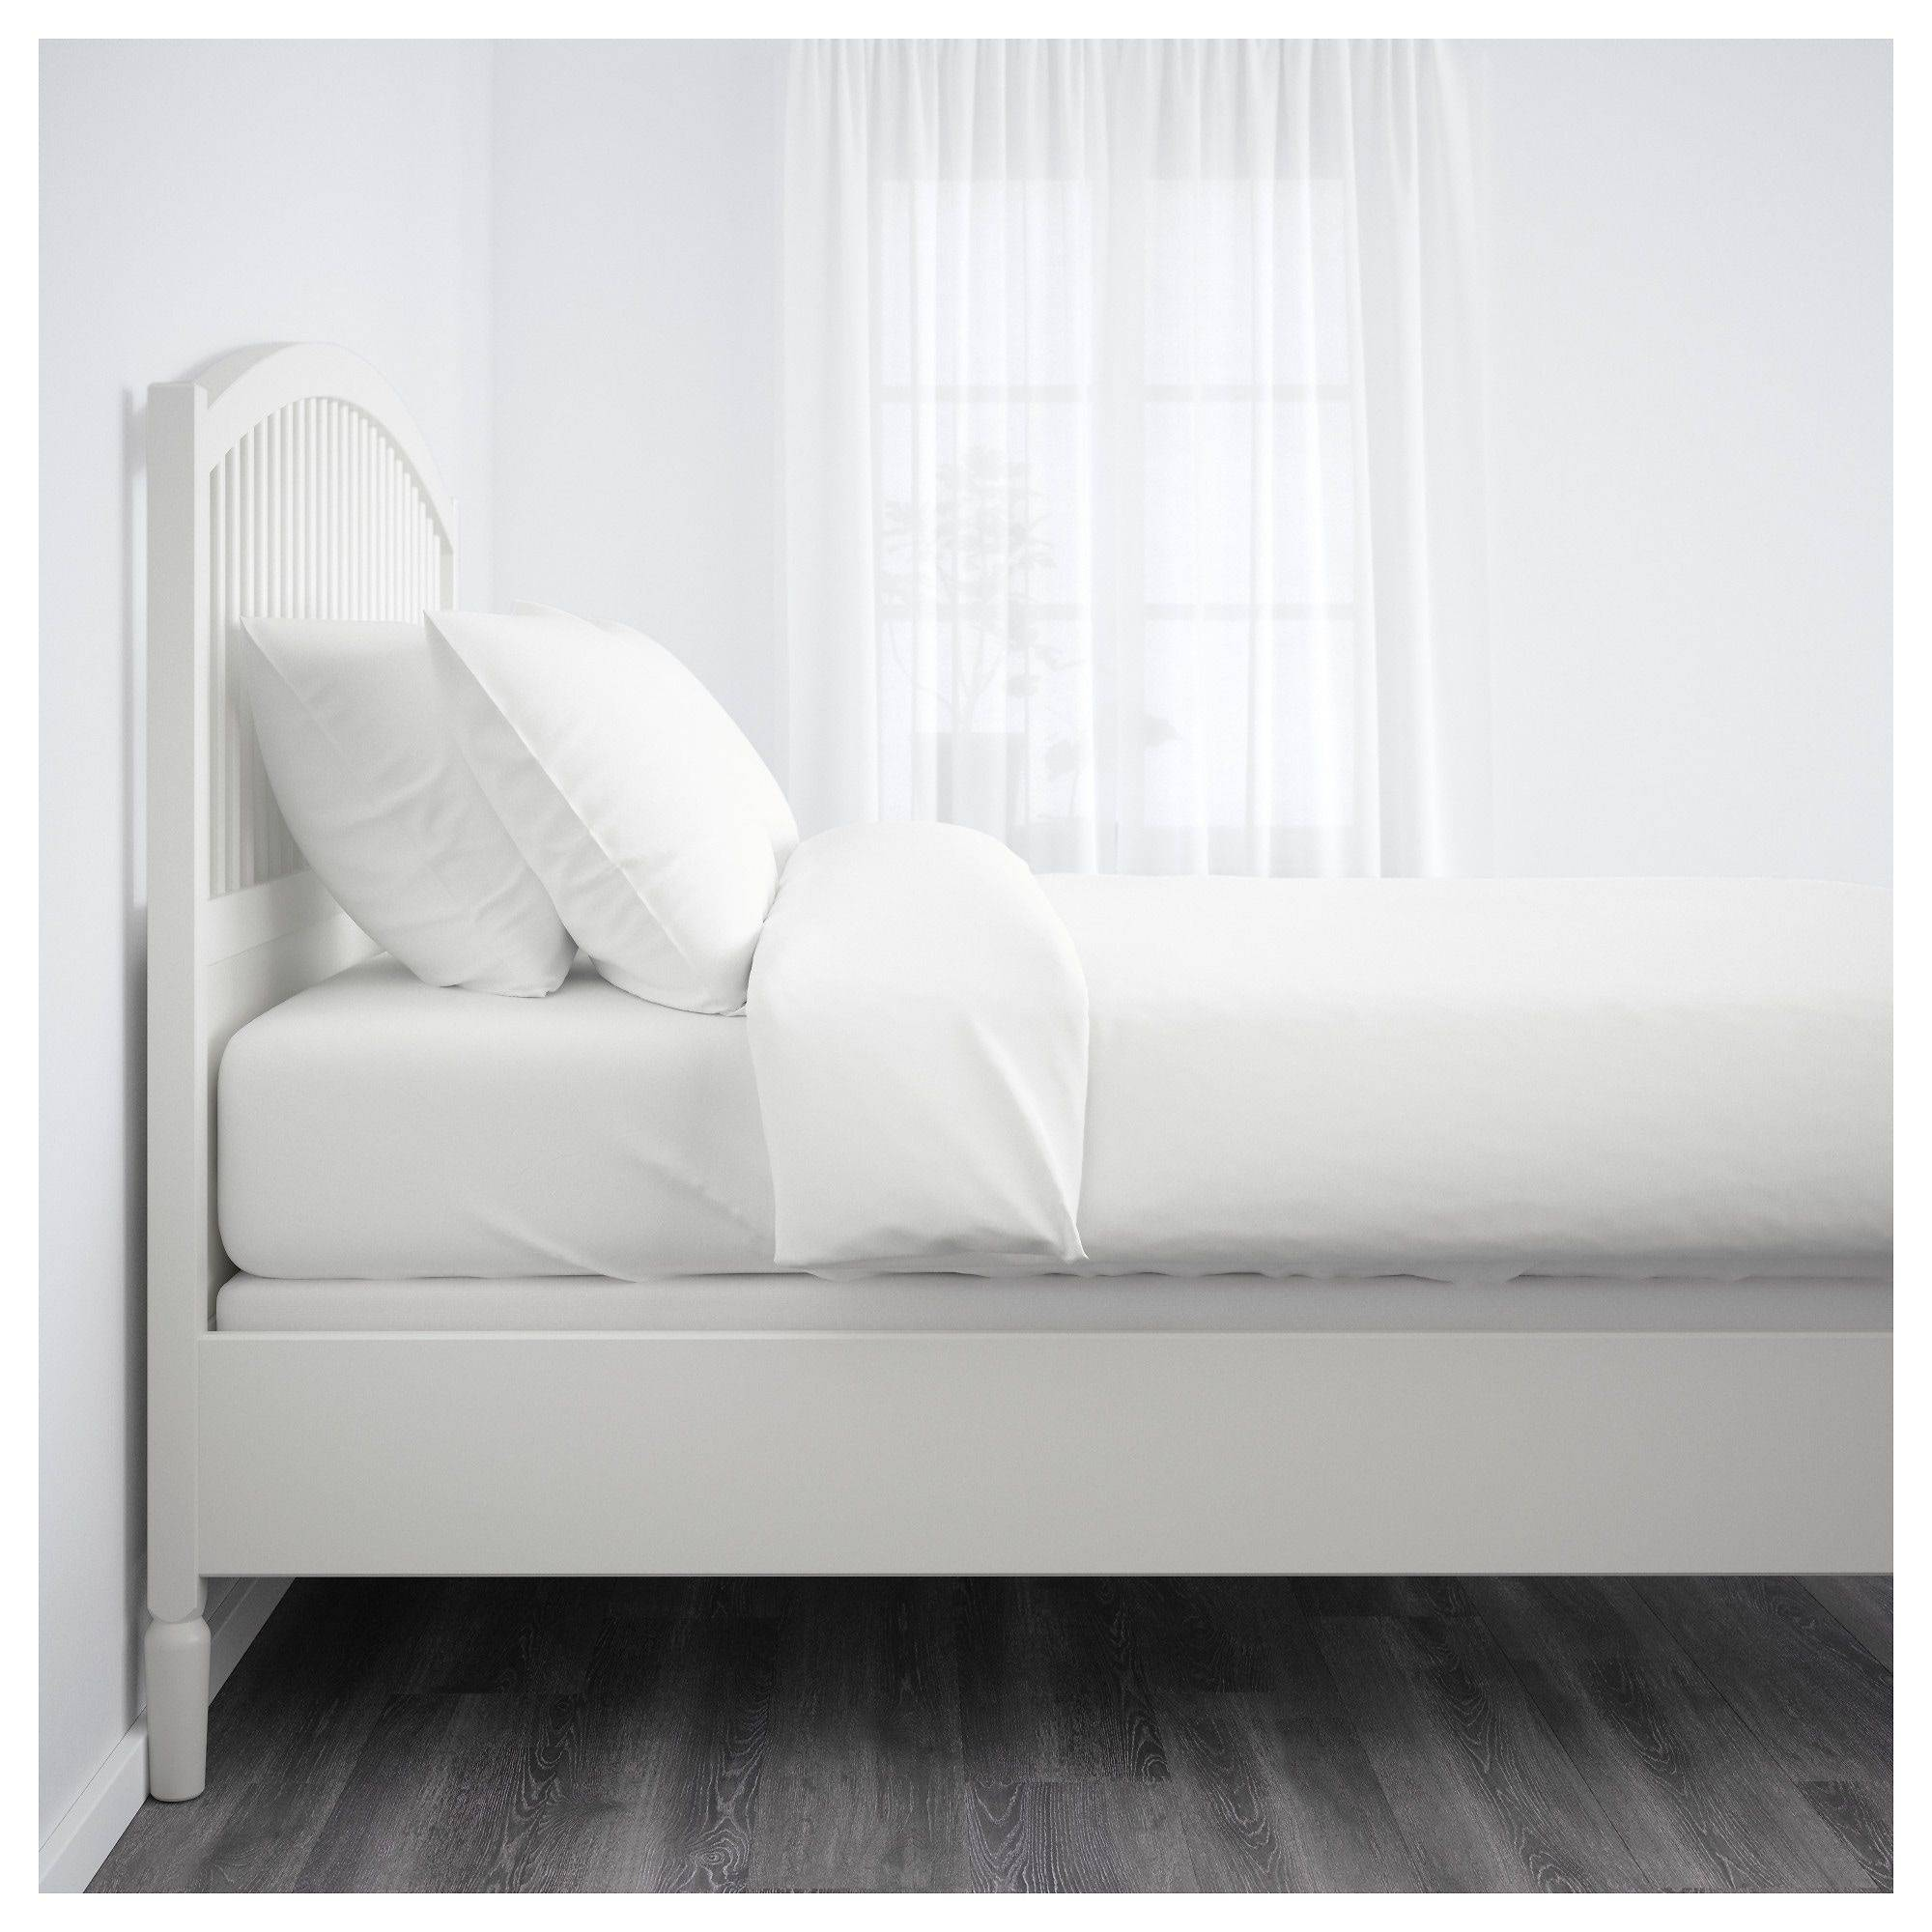 Exceptional Unusual Bed Frames Best Of Tyssedal Bed Frame White Eidfjord Queen